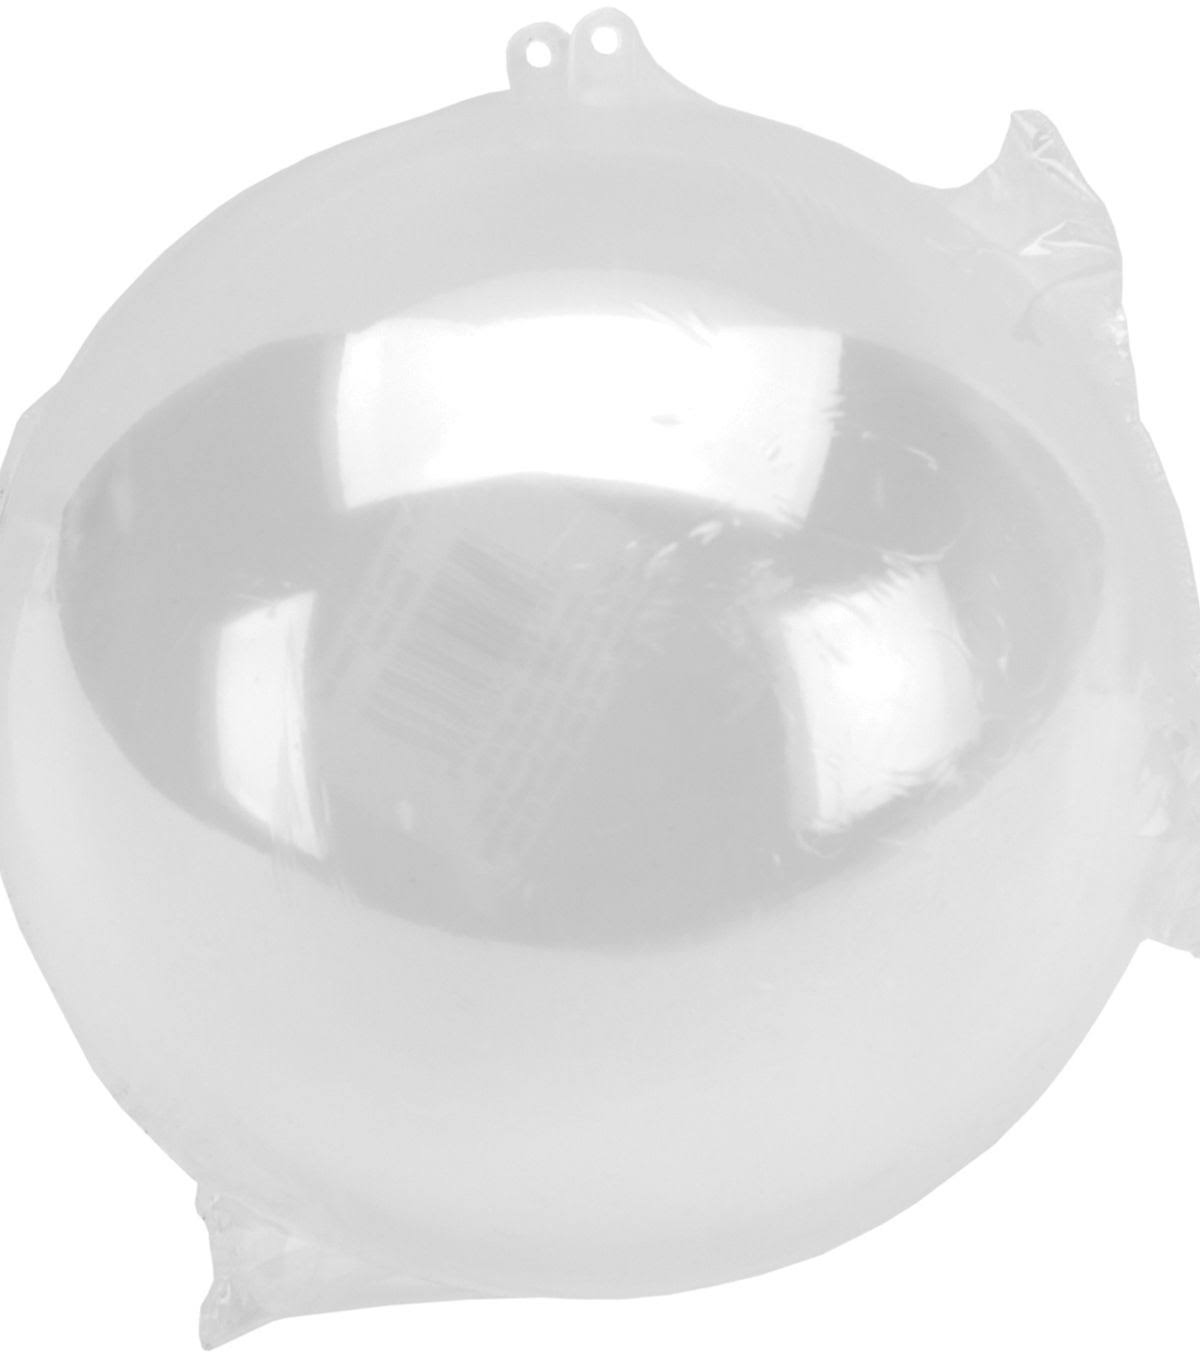 Darice Plastic Hanging Ball Ornament - 140mm, Clear